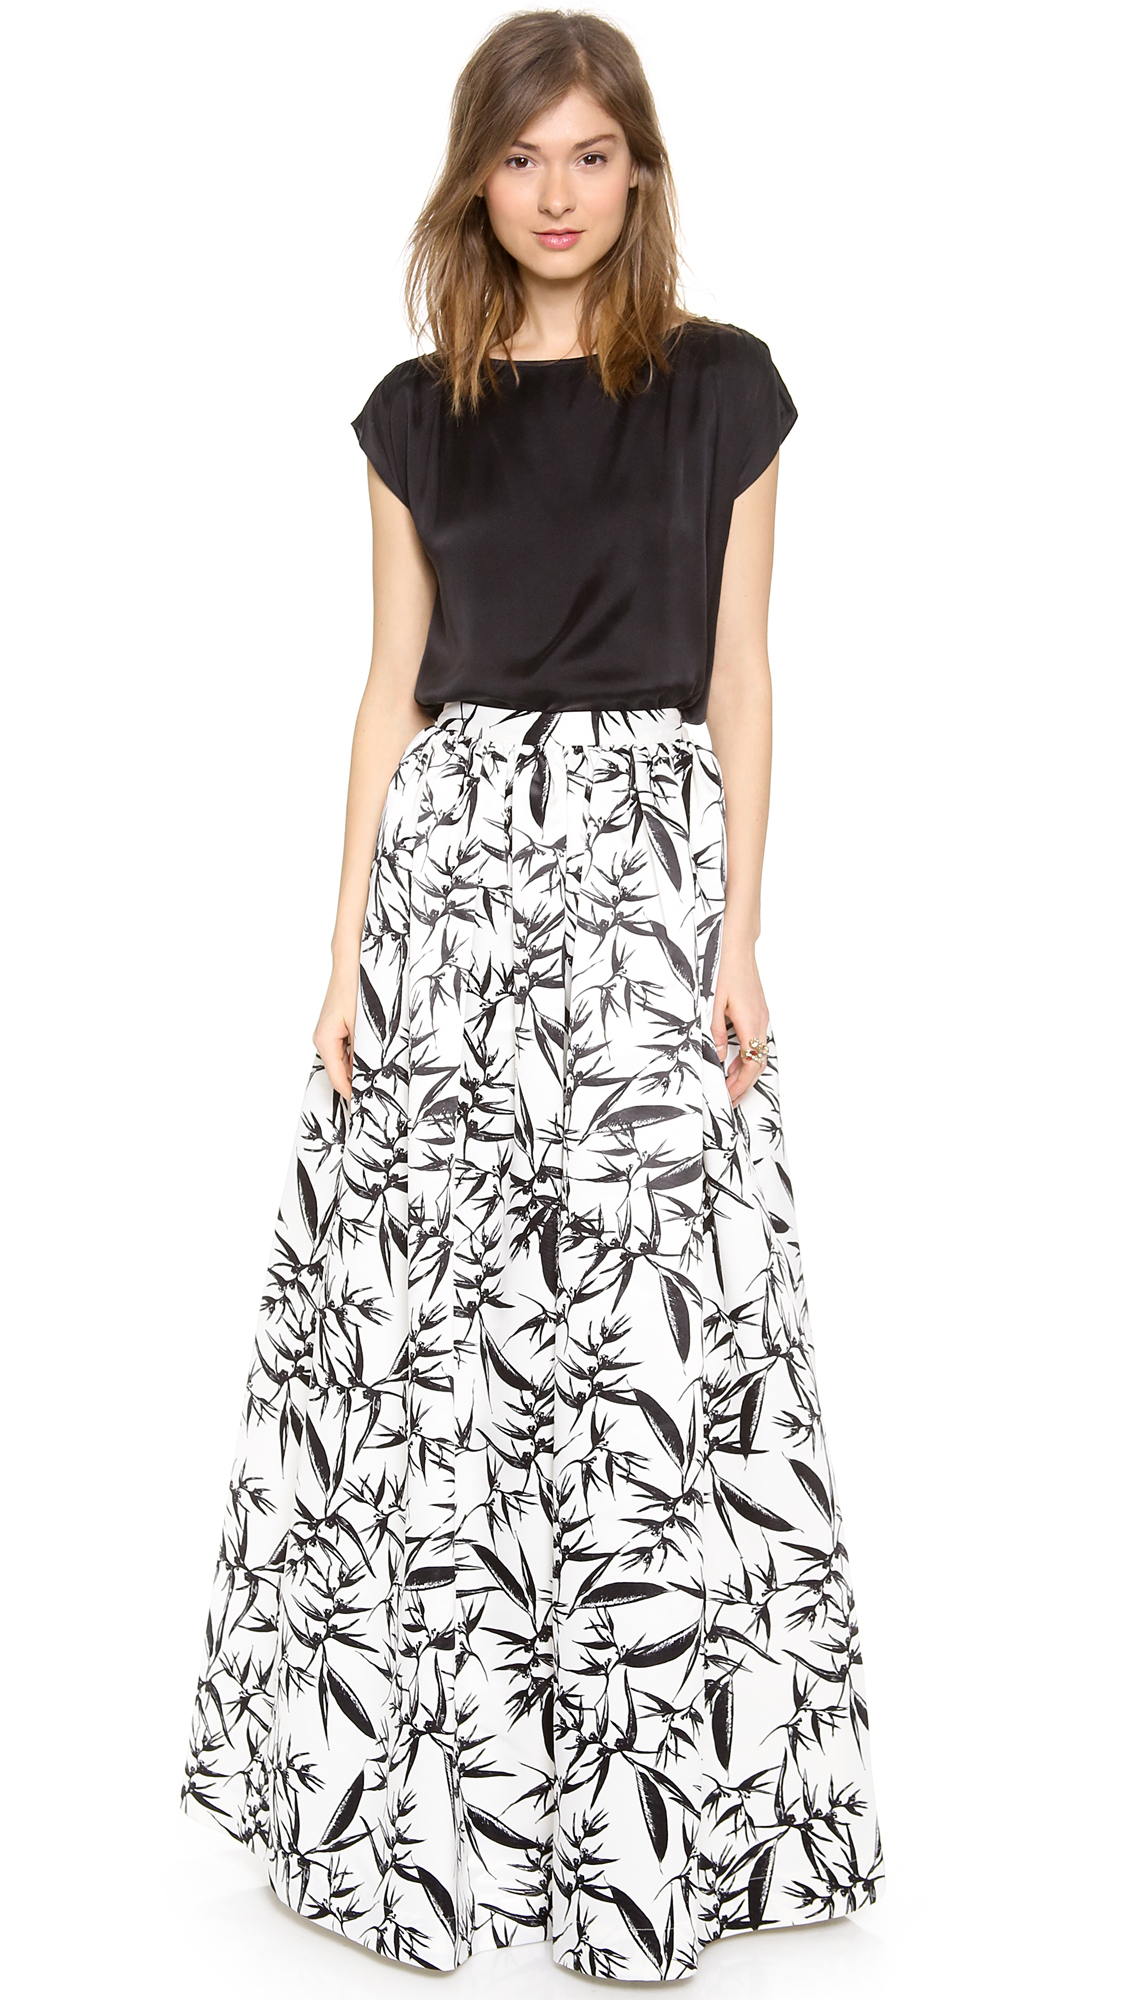 Lyst - Alice + Olivia Alice Olivia Abaella Long Ball Gown Skirt in Black